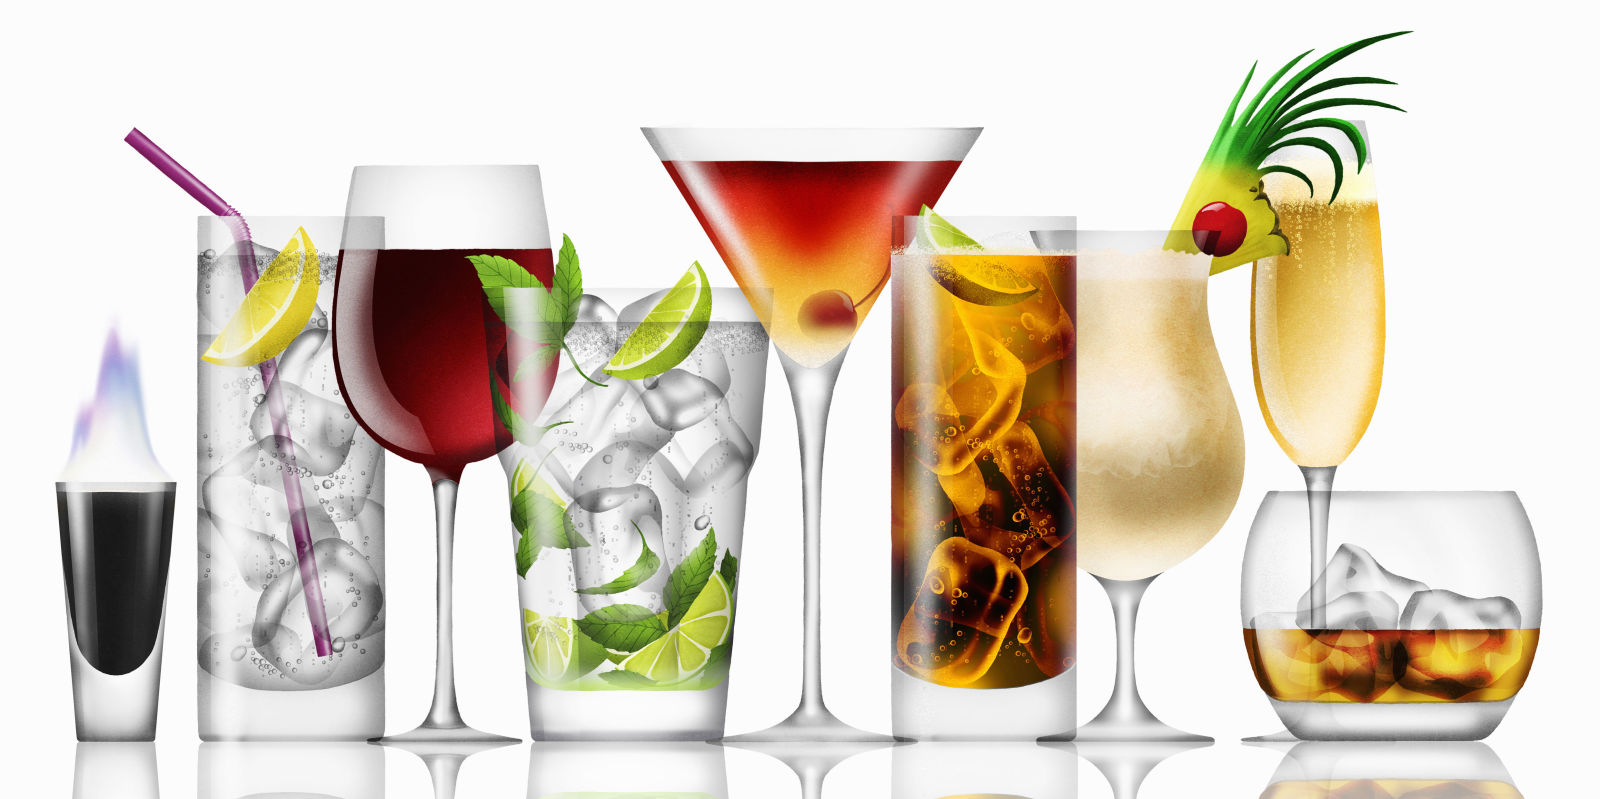 11 Mixers That Make Alcoholic Drinks Healthier